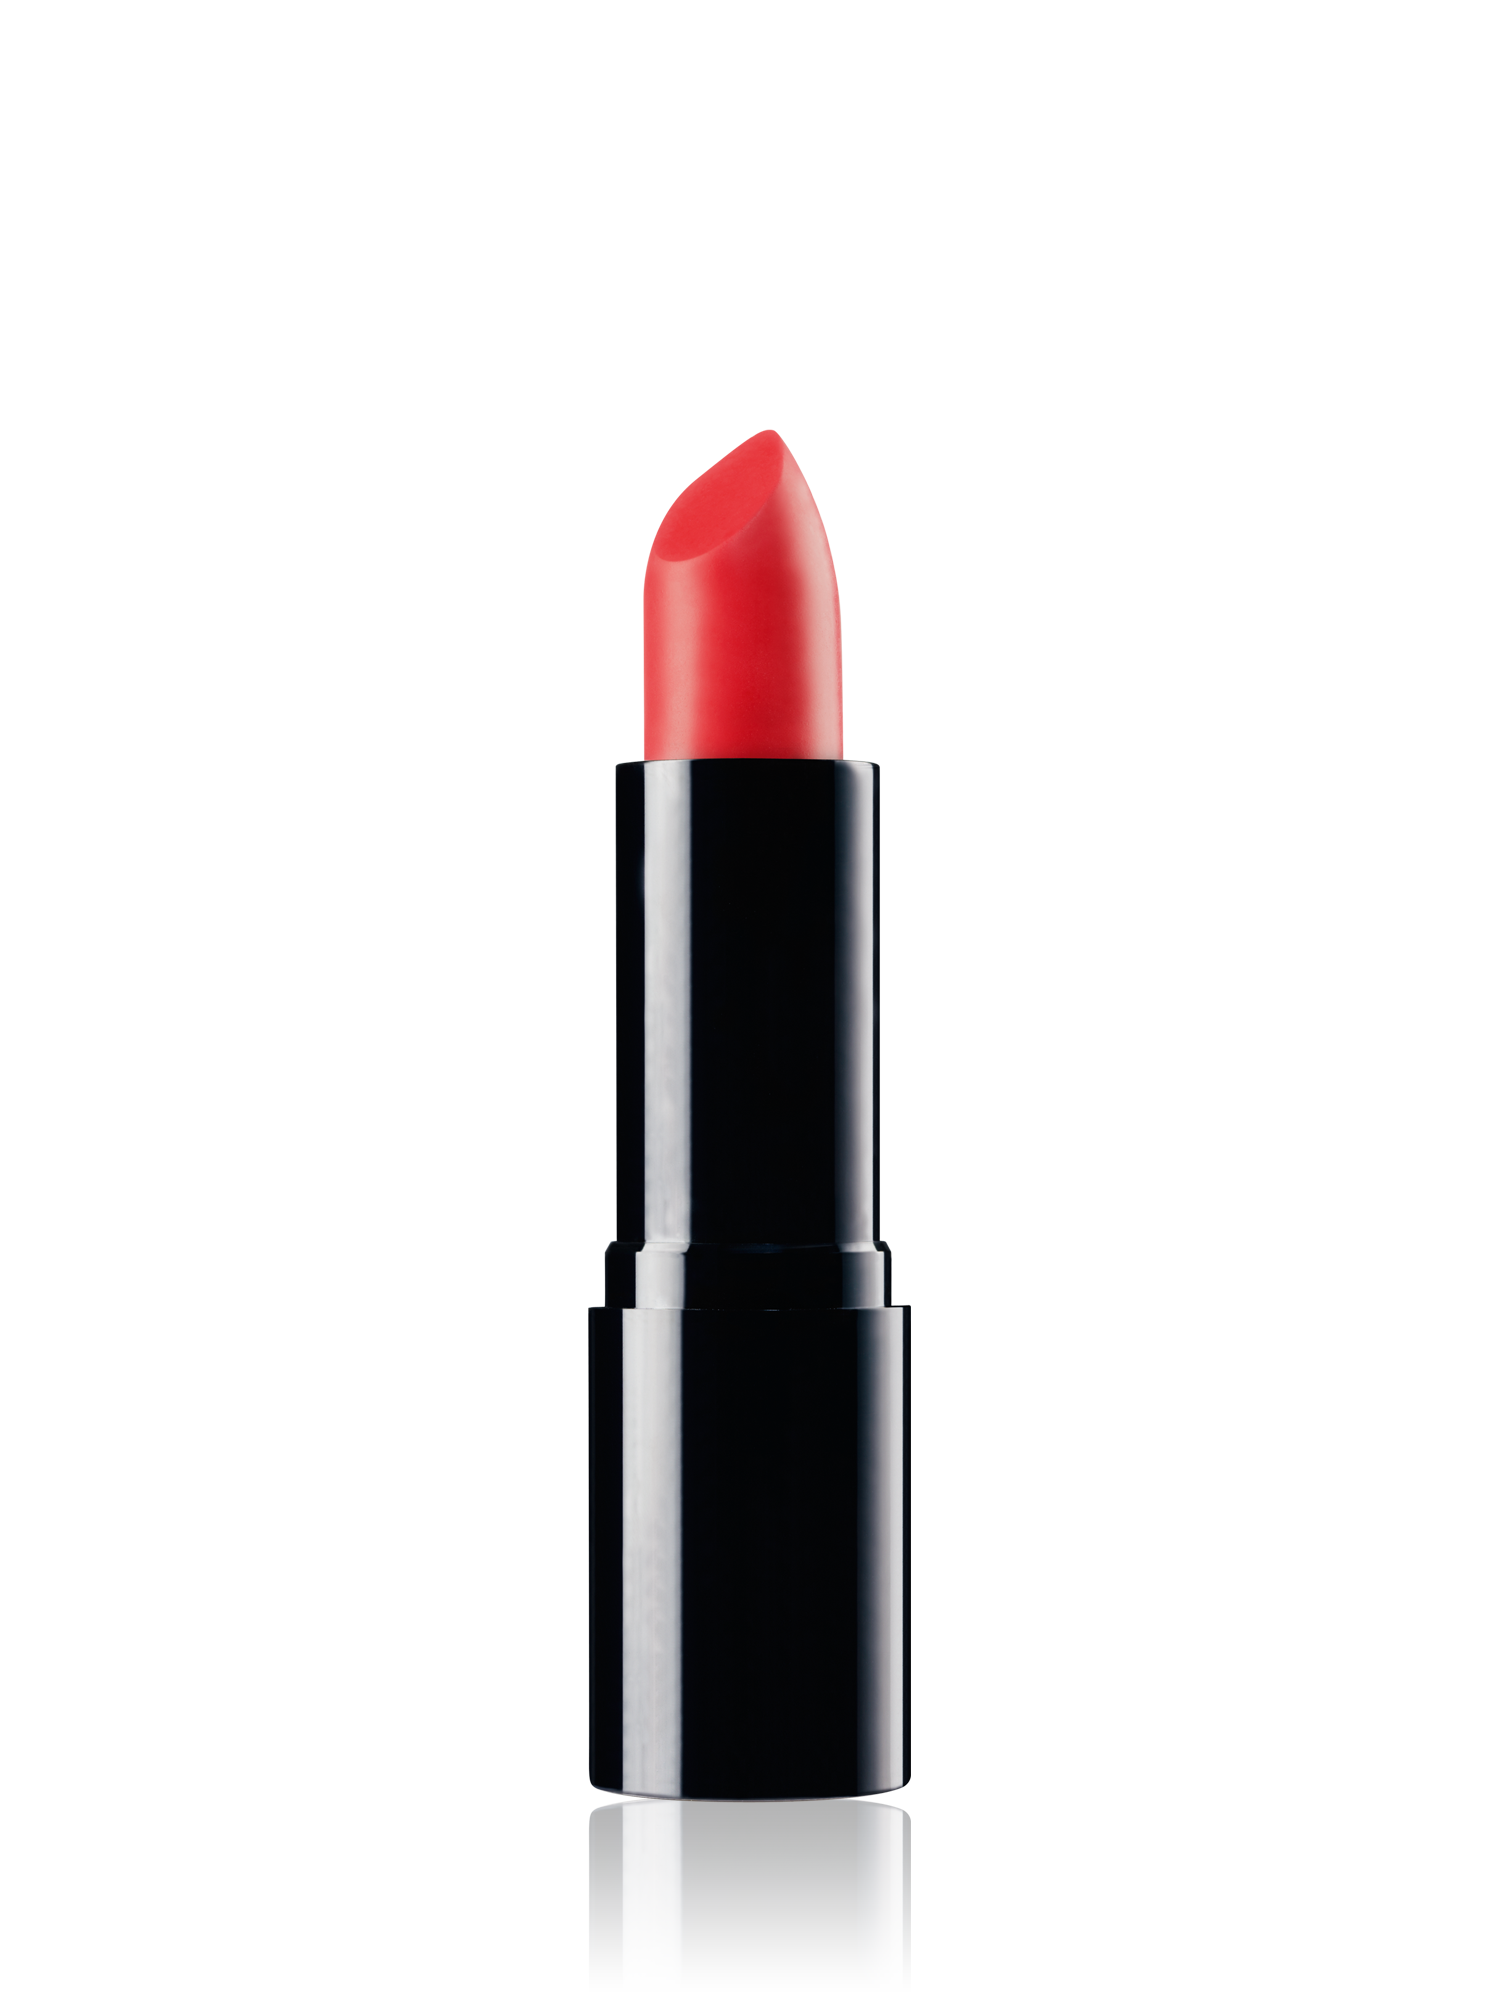 Lipstick PNG images free download.